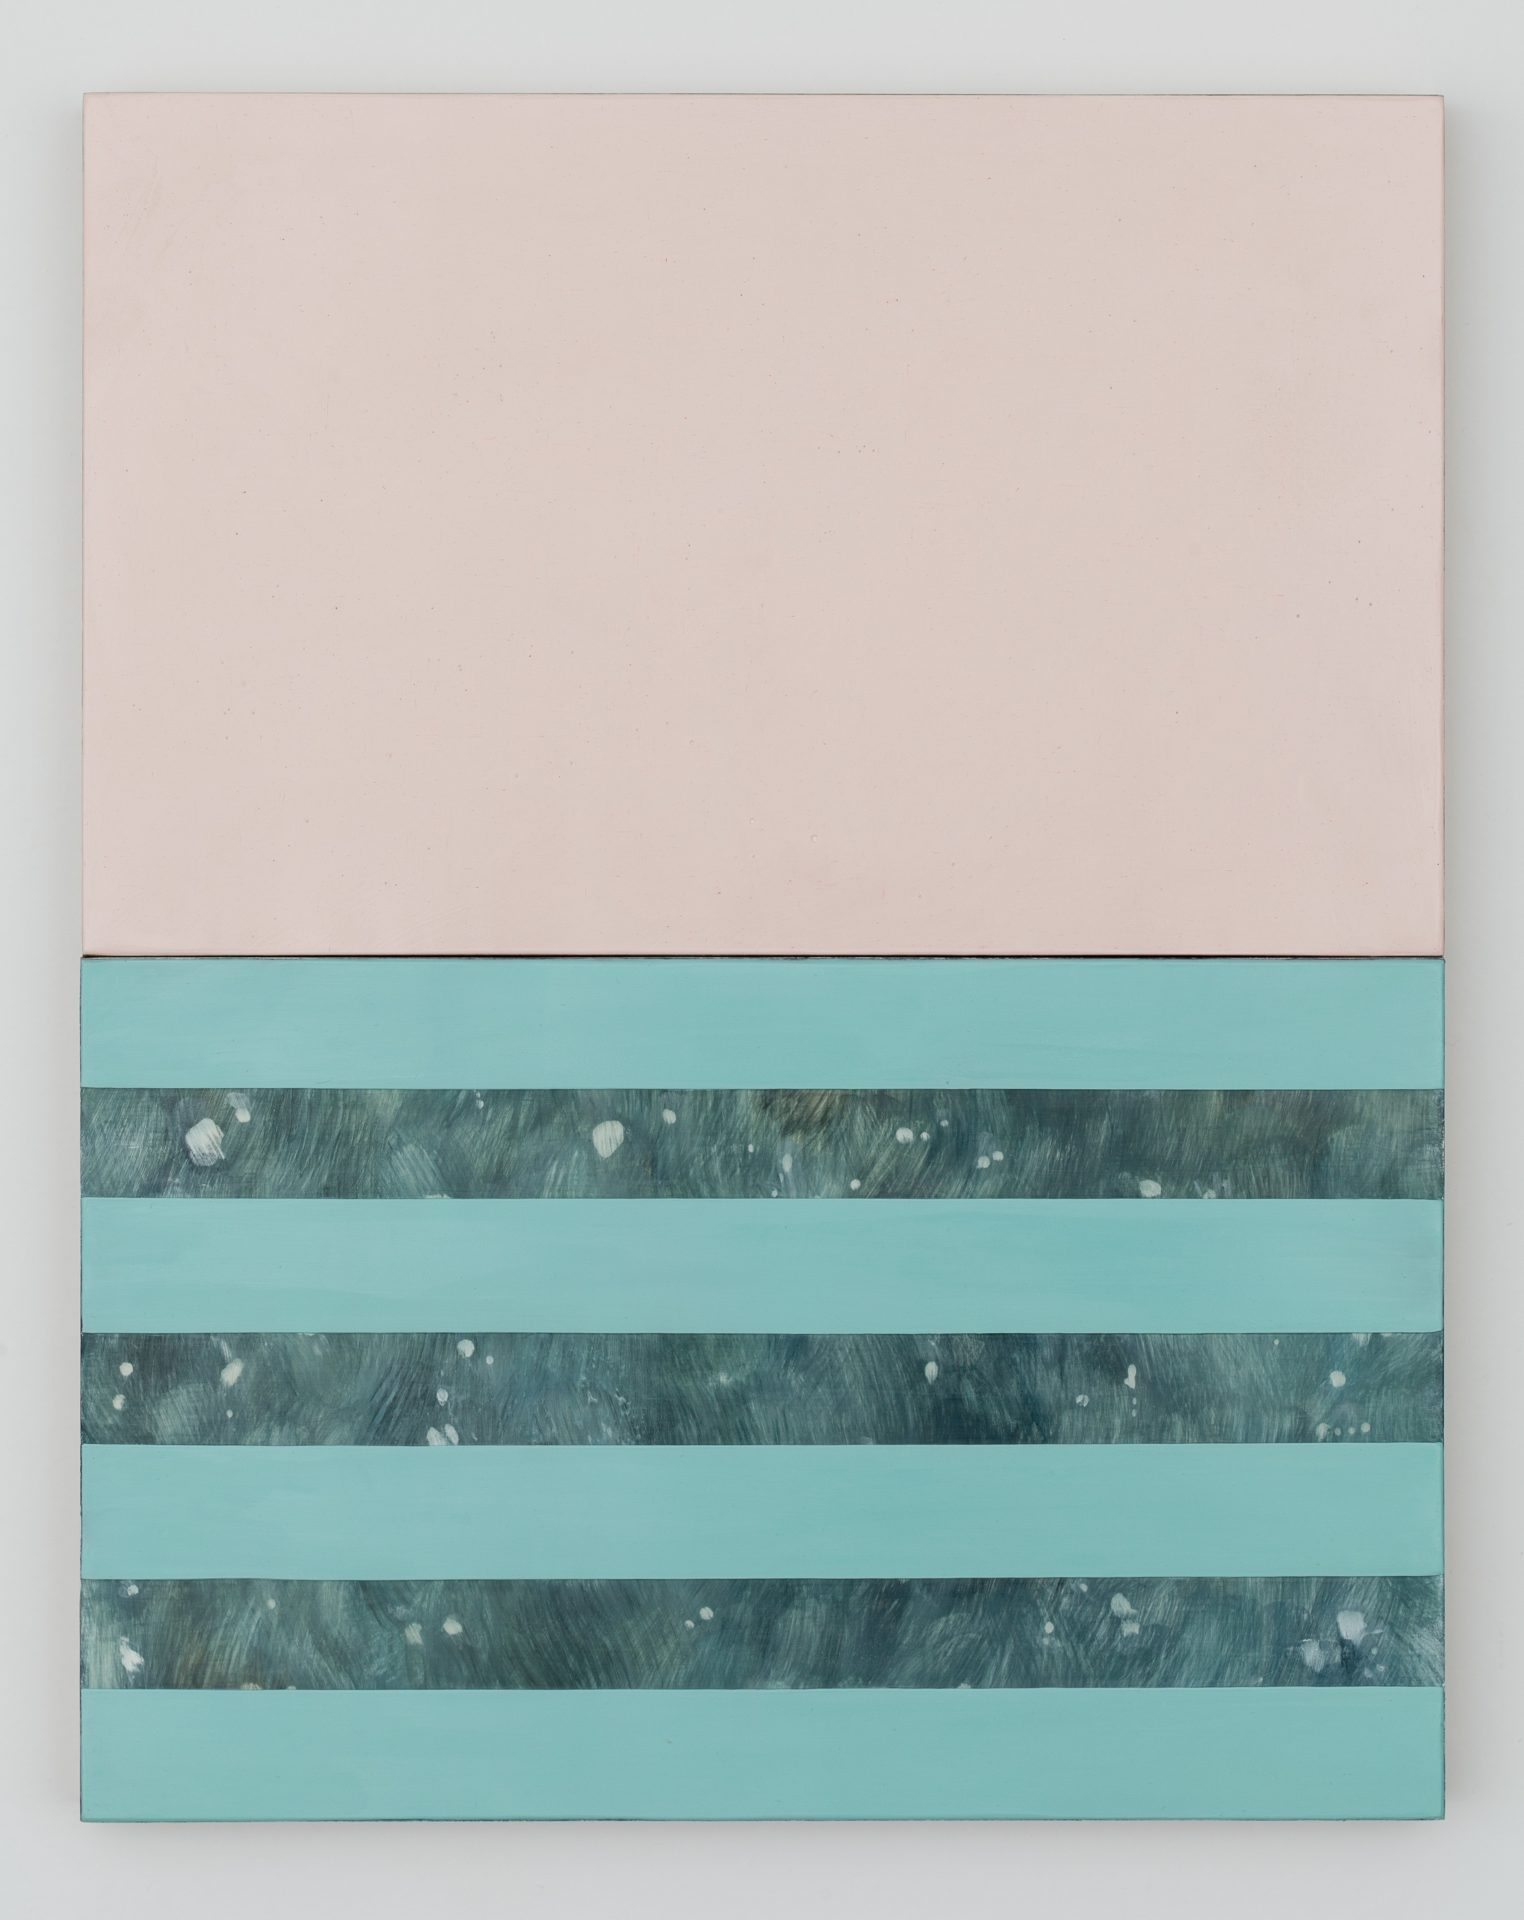 Untitled (matter, ether)